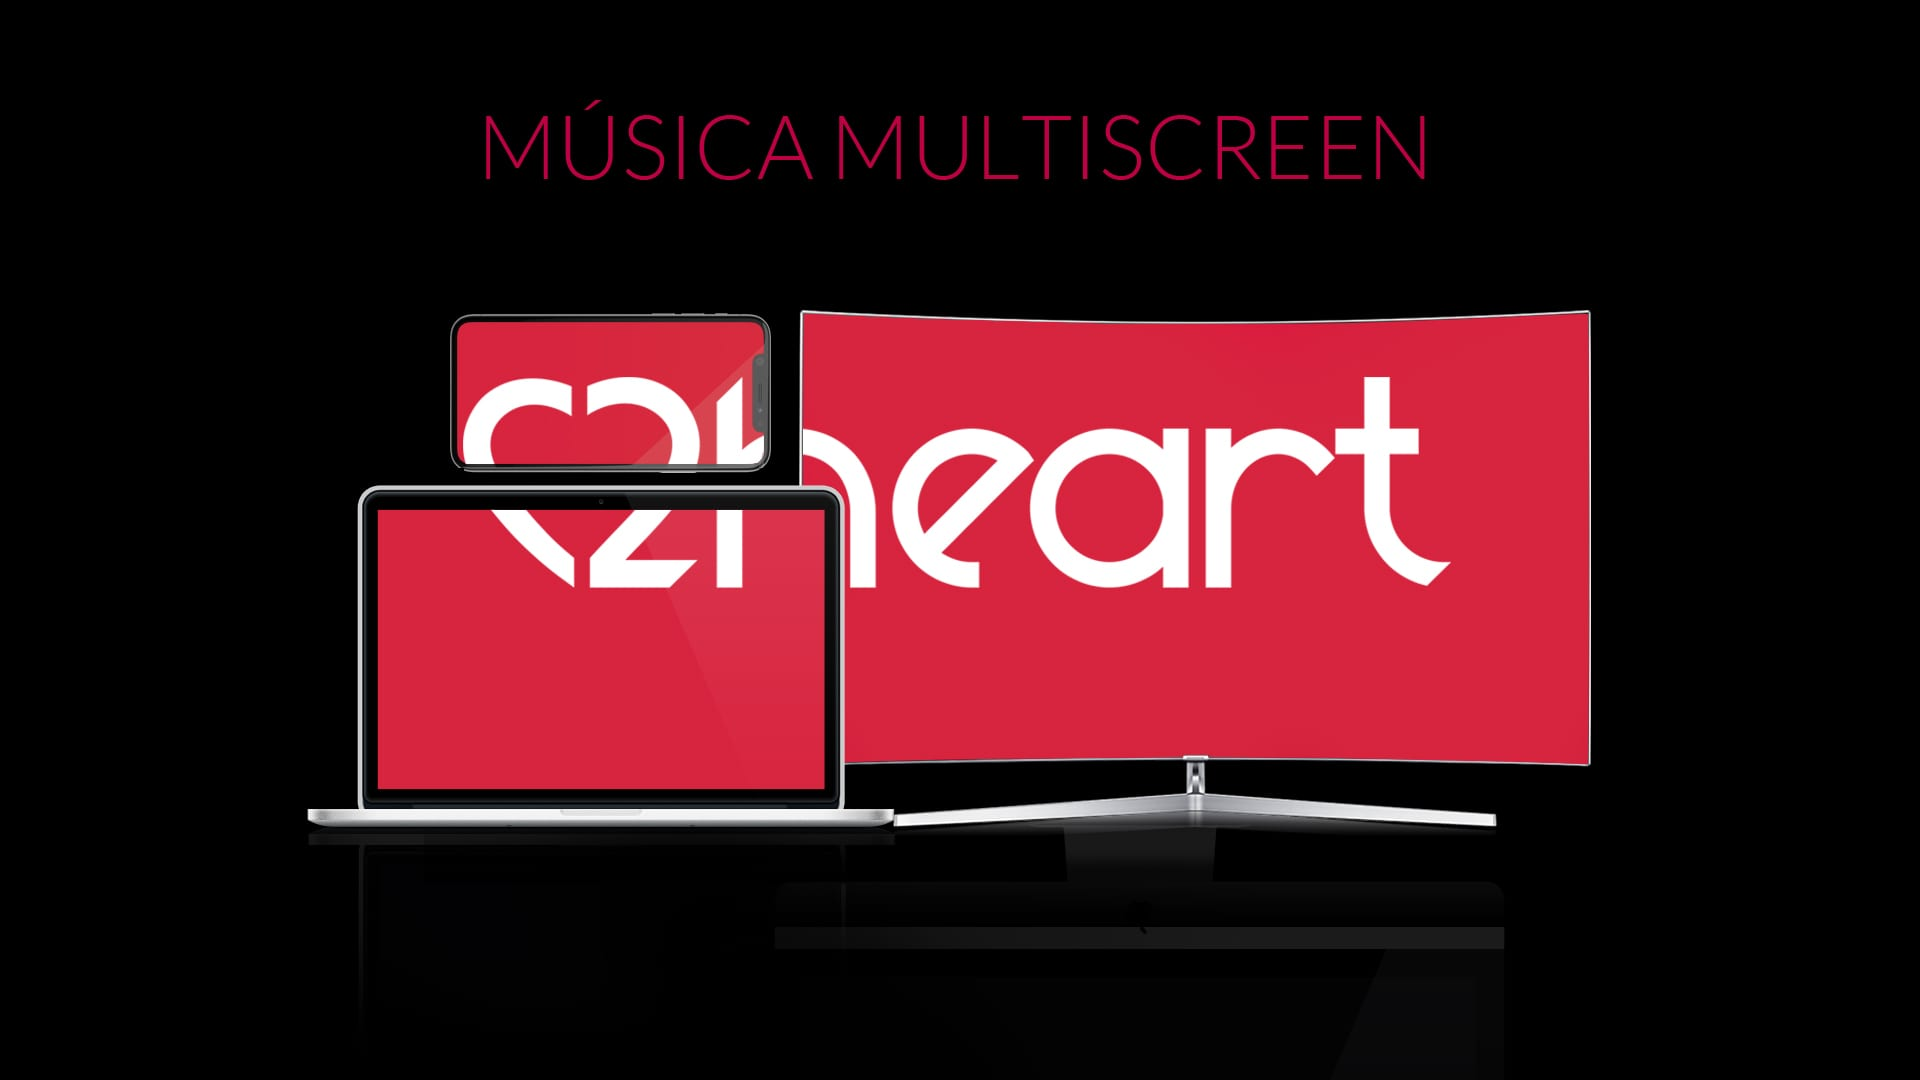 Musica Multiscreen 2heart